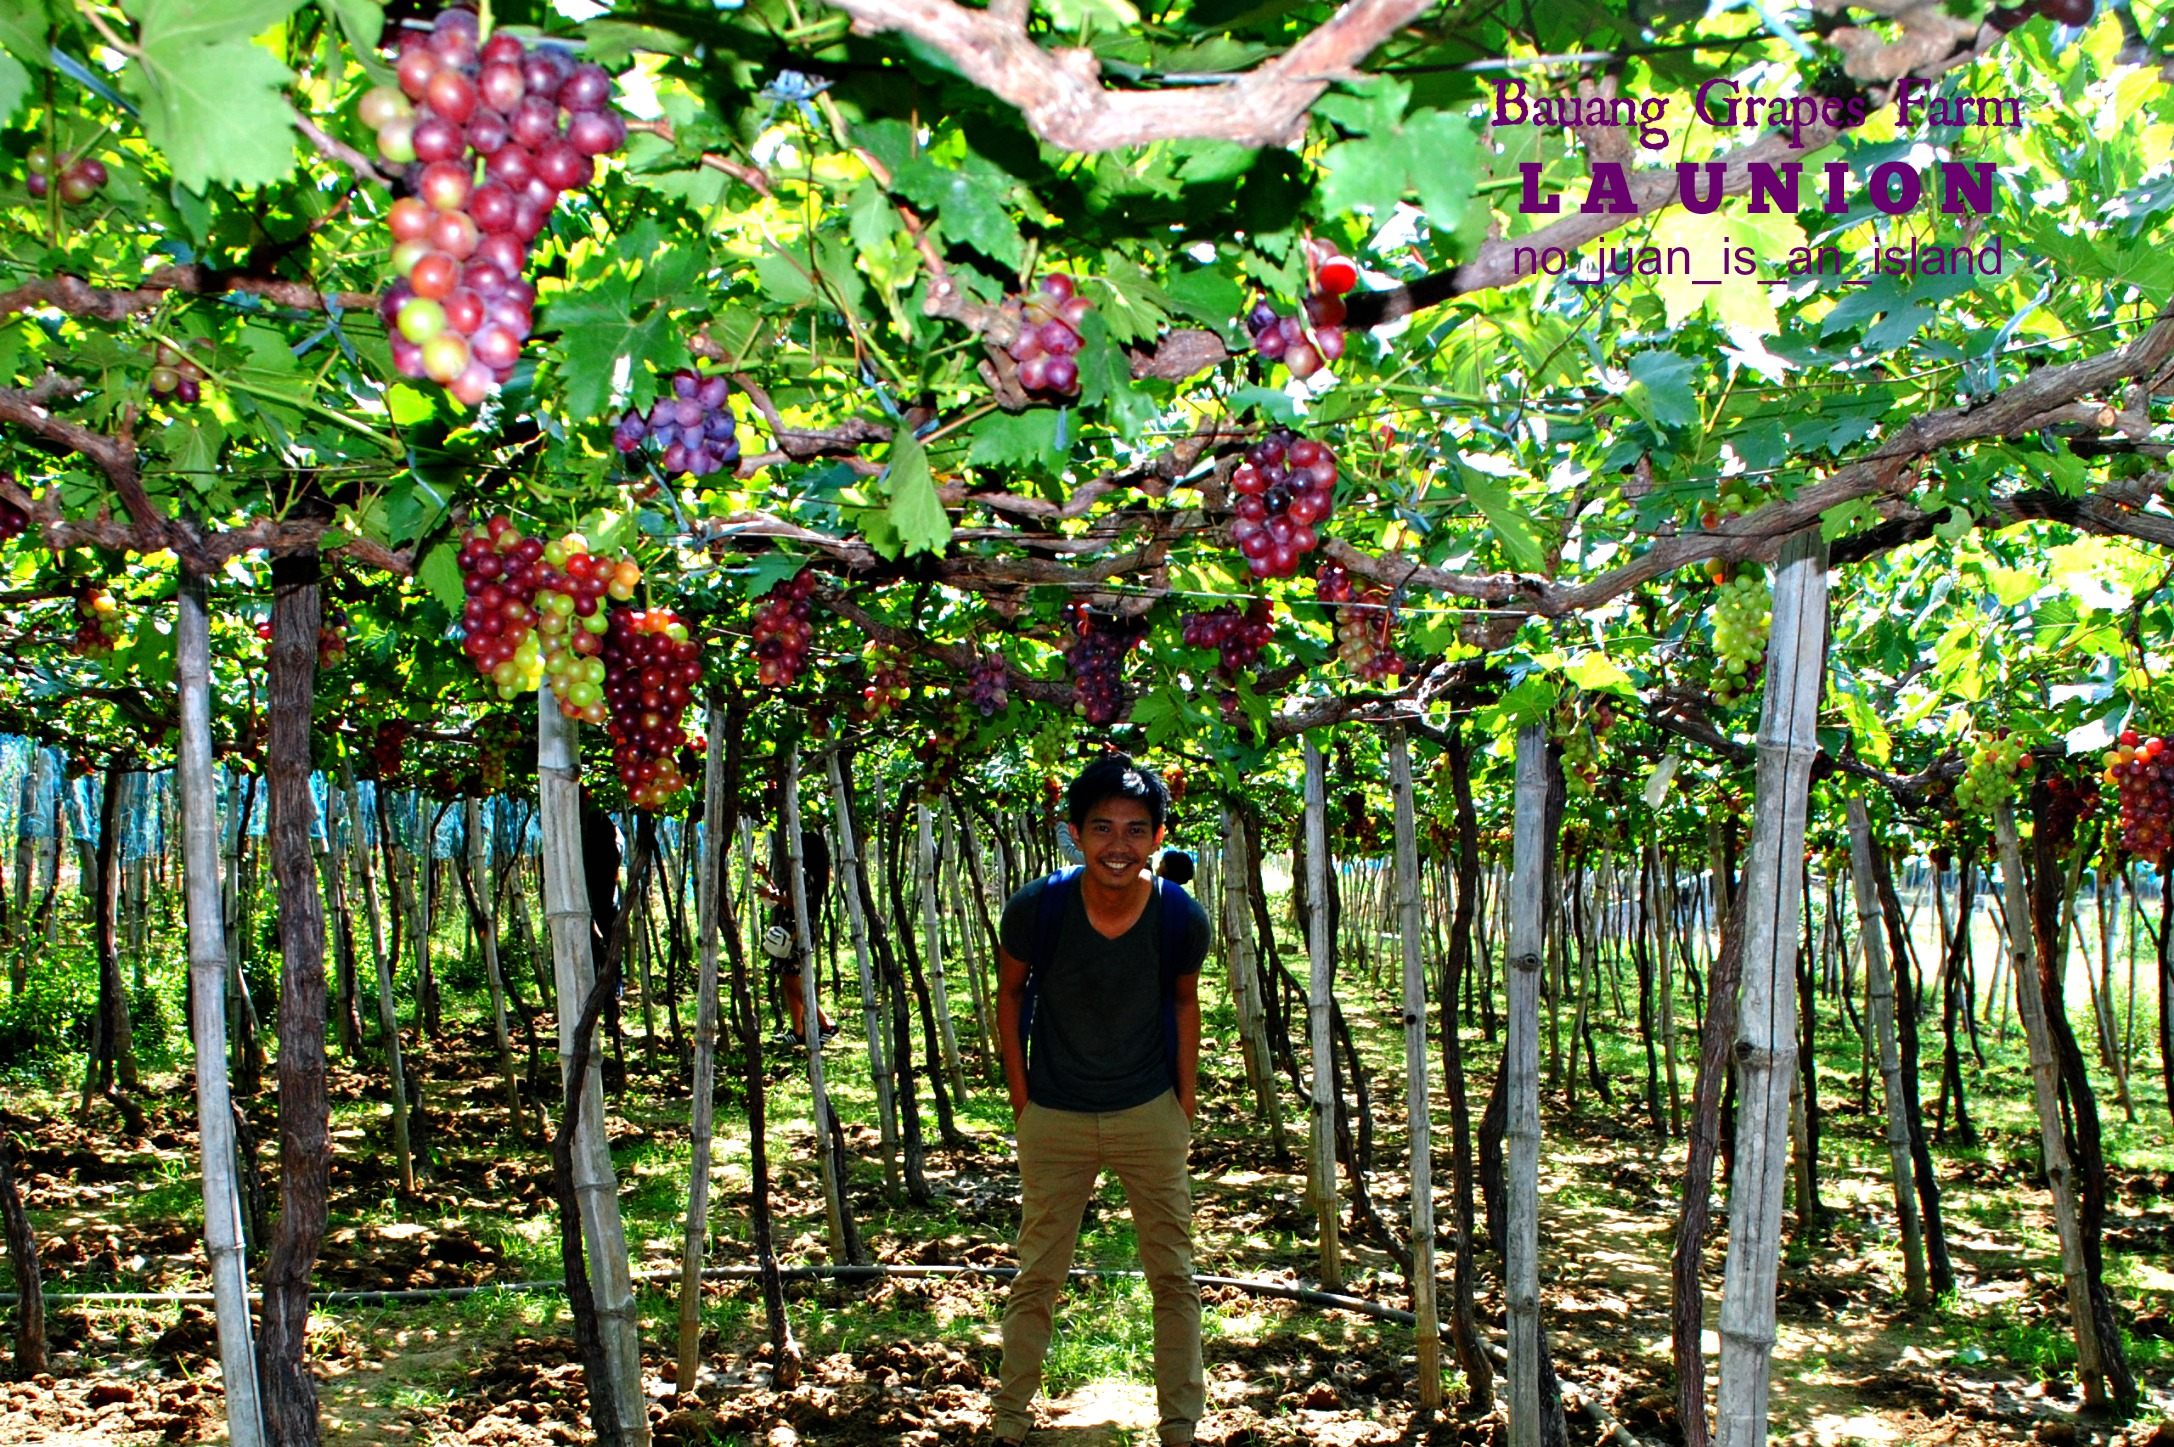 Bauang Grapes Farm (La Union, PH) | No Juan Is An Island